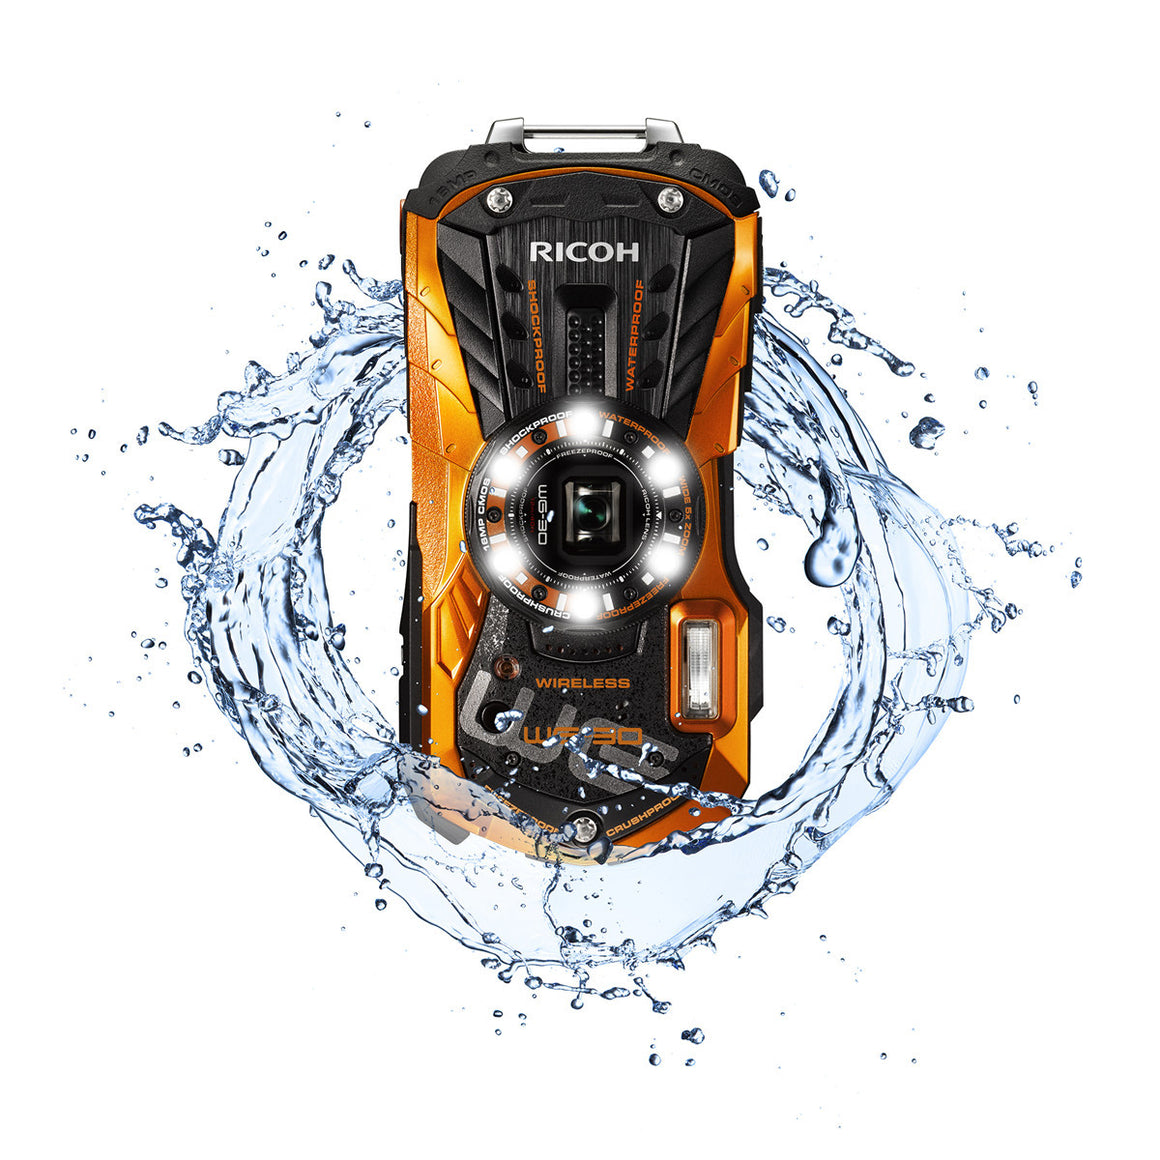 Ricoh (Pentax) WG-30w Waterproof Compact Digital Camera 16 MP Optical Image Stabilized Zoom 5X